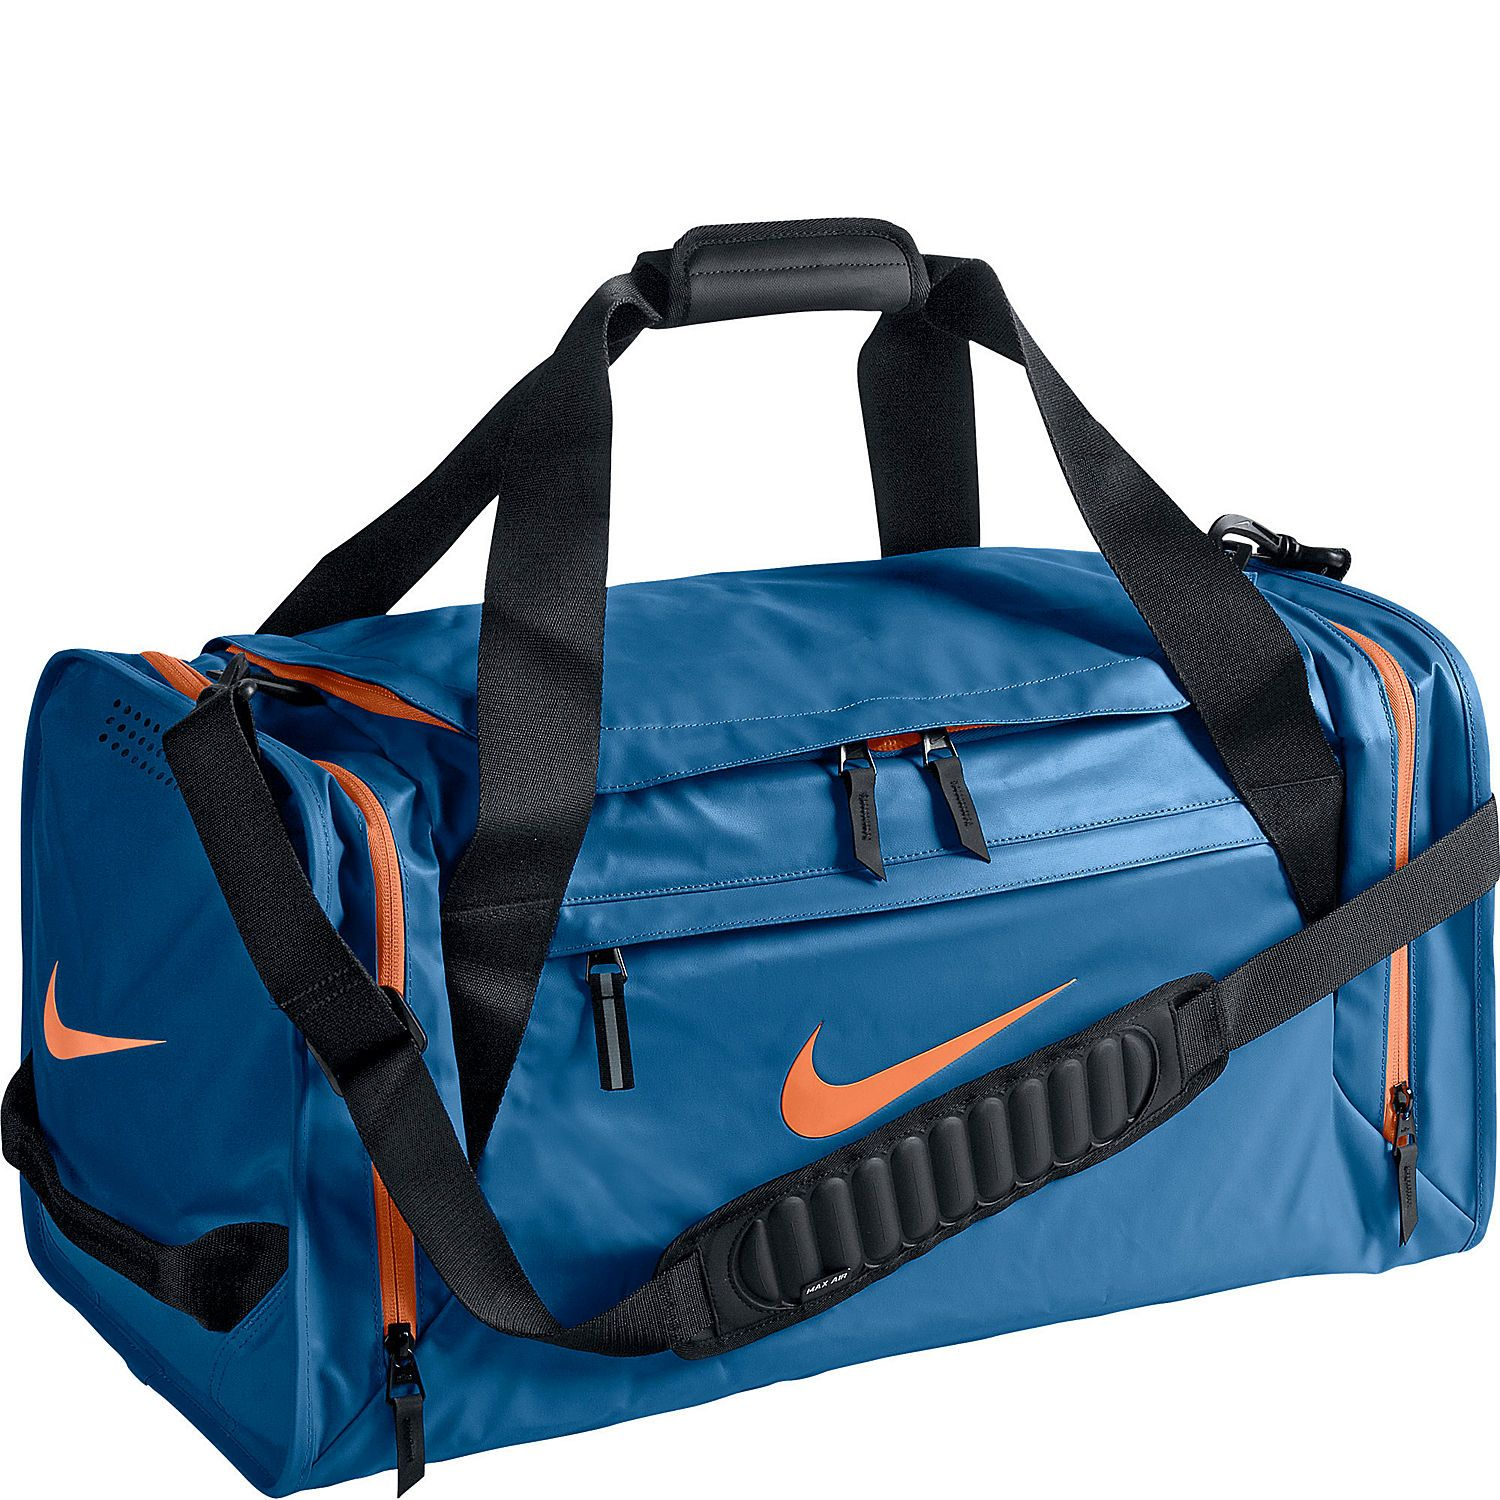 477f818d8af9 Nike Nike Ultimatum Max Air Small Duffel - eBags.com Nike Gym Bag